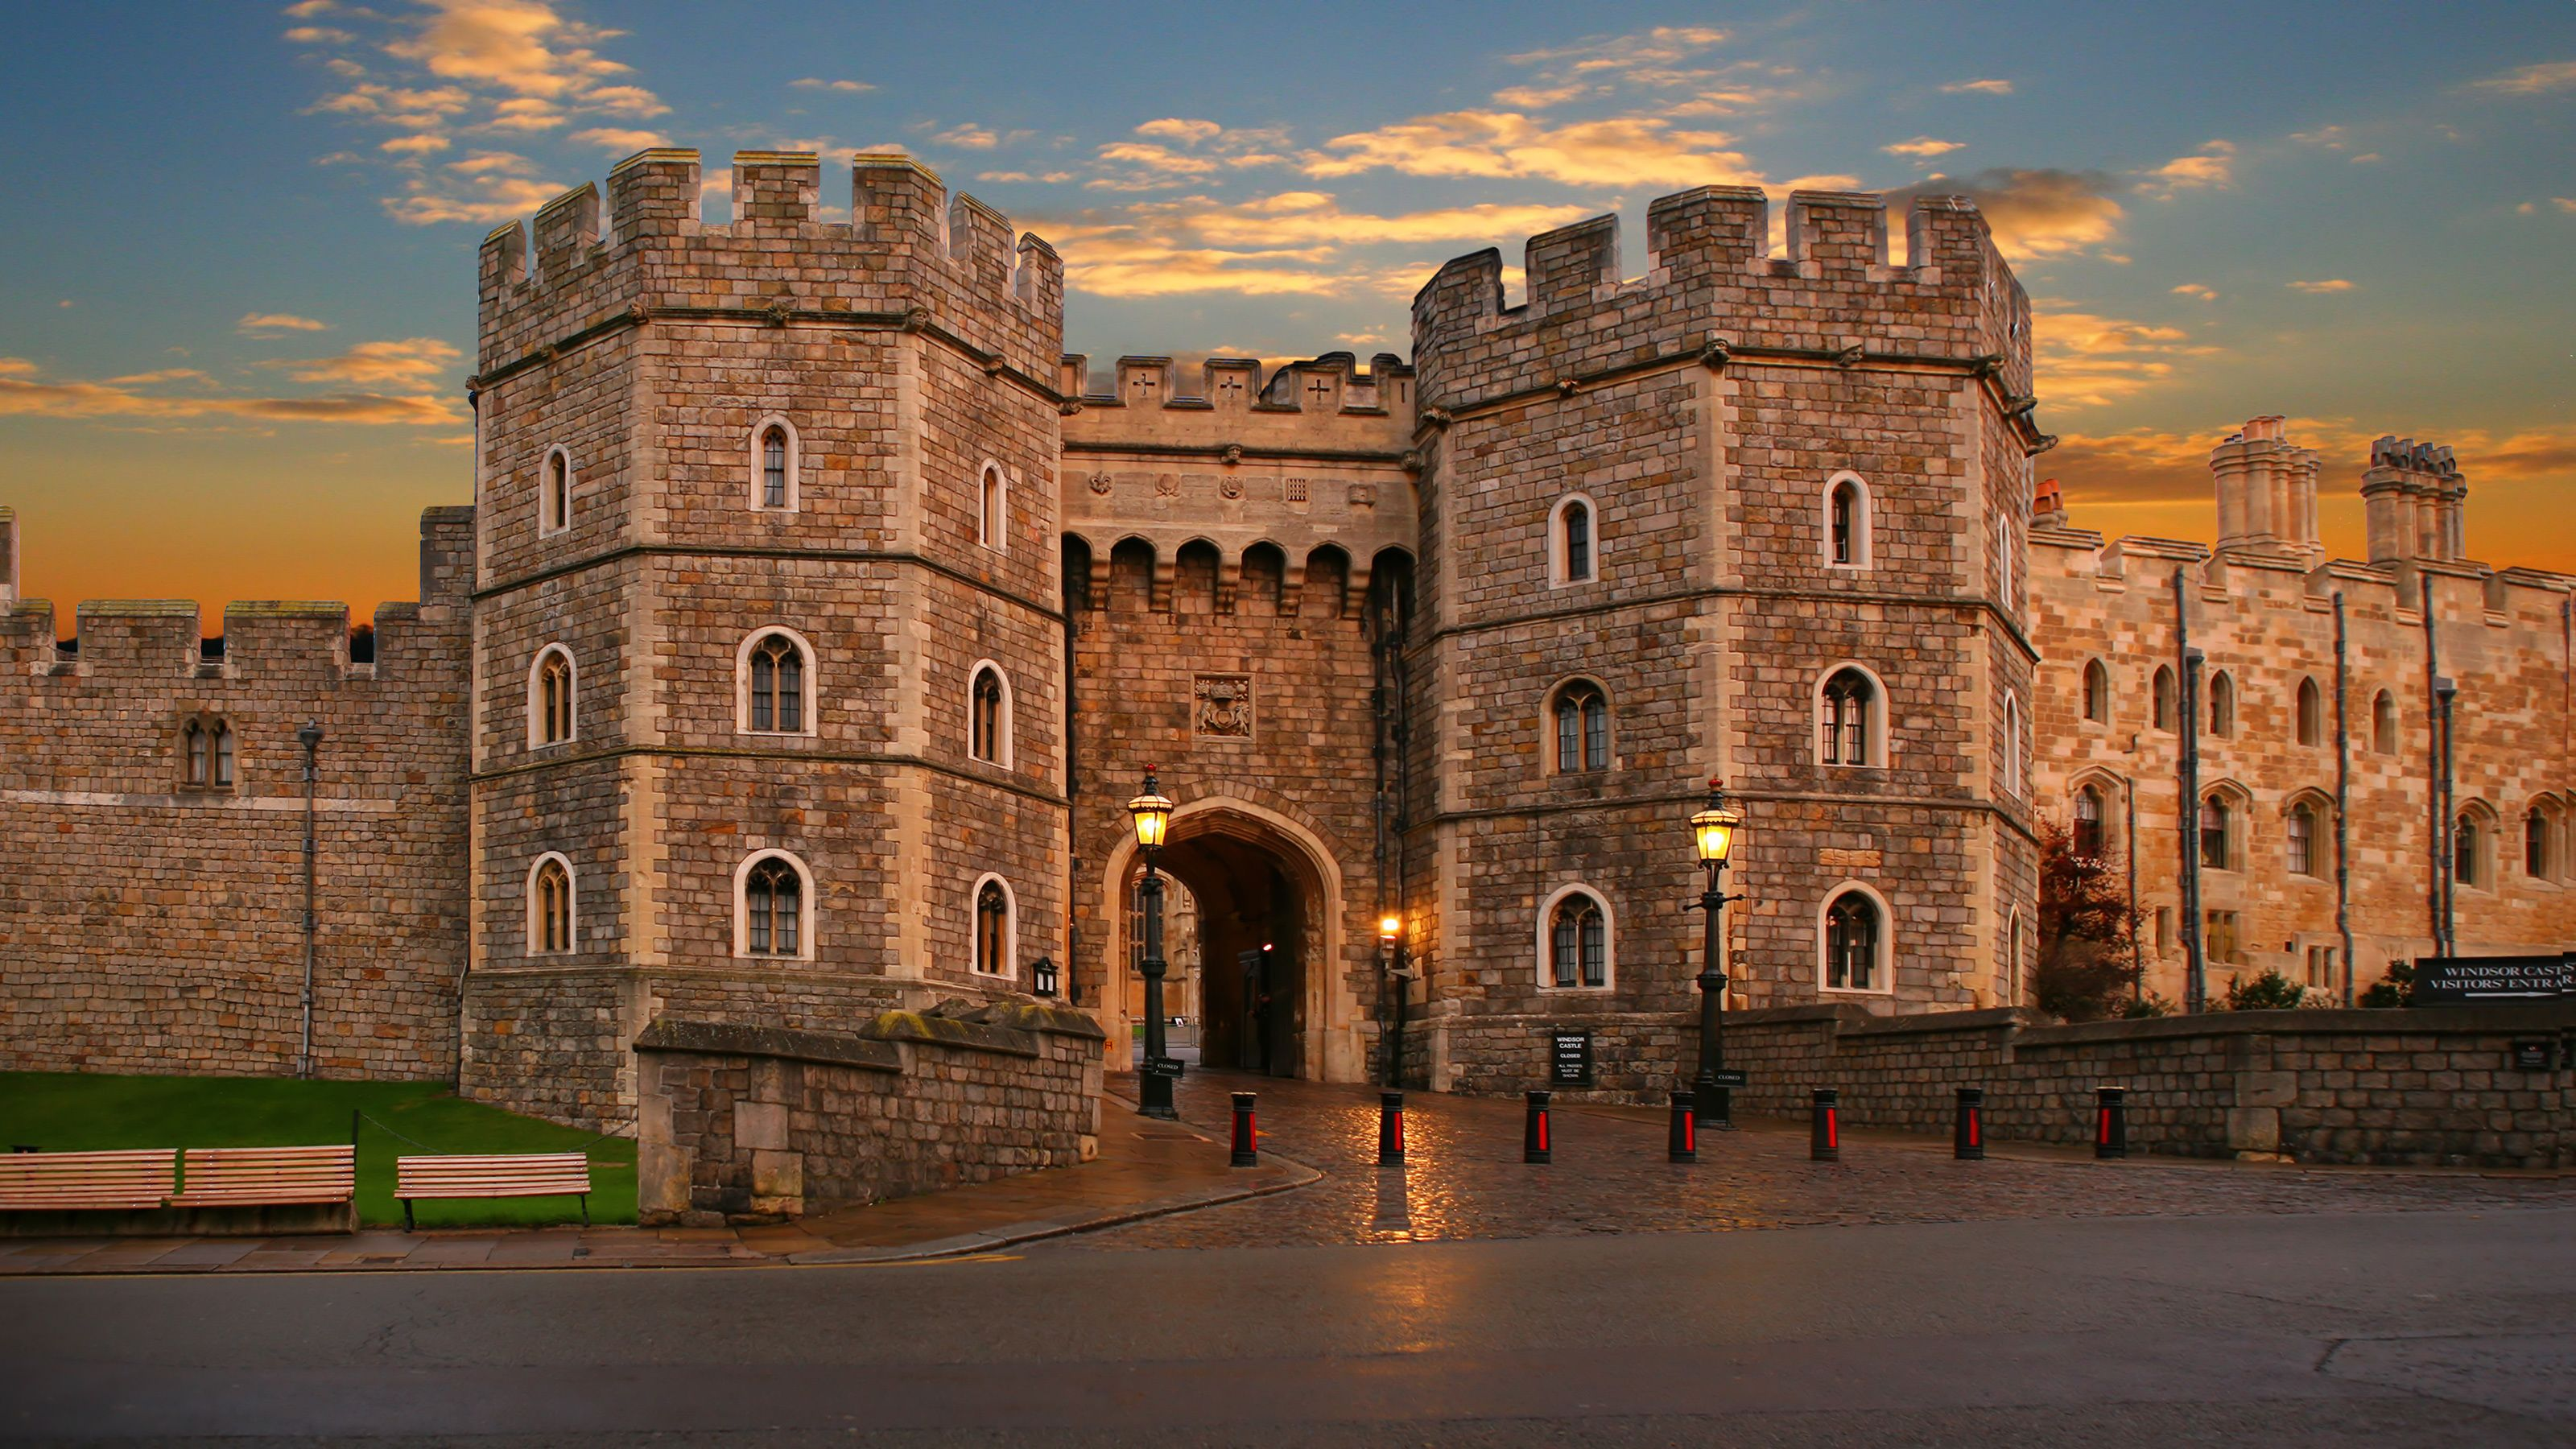 Skip-the-Line Windsor Castle Tickets